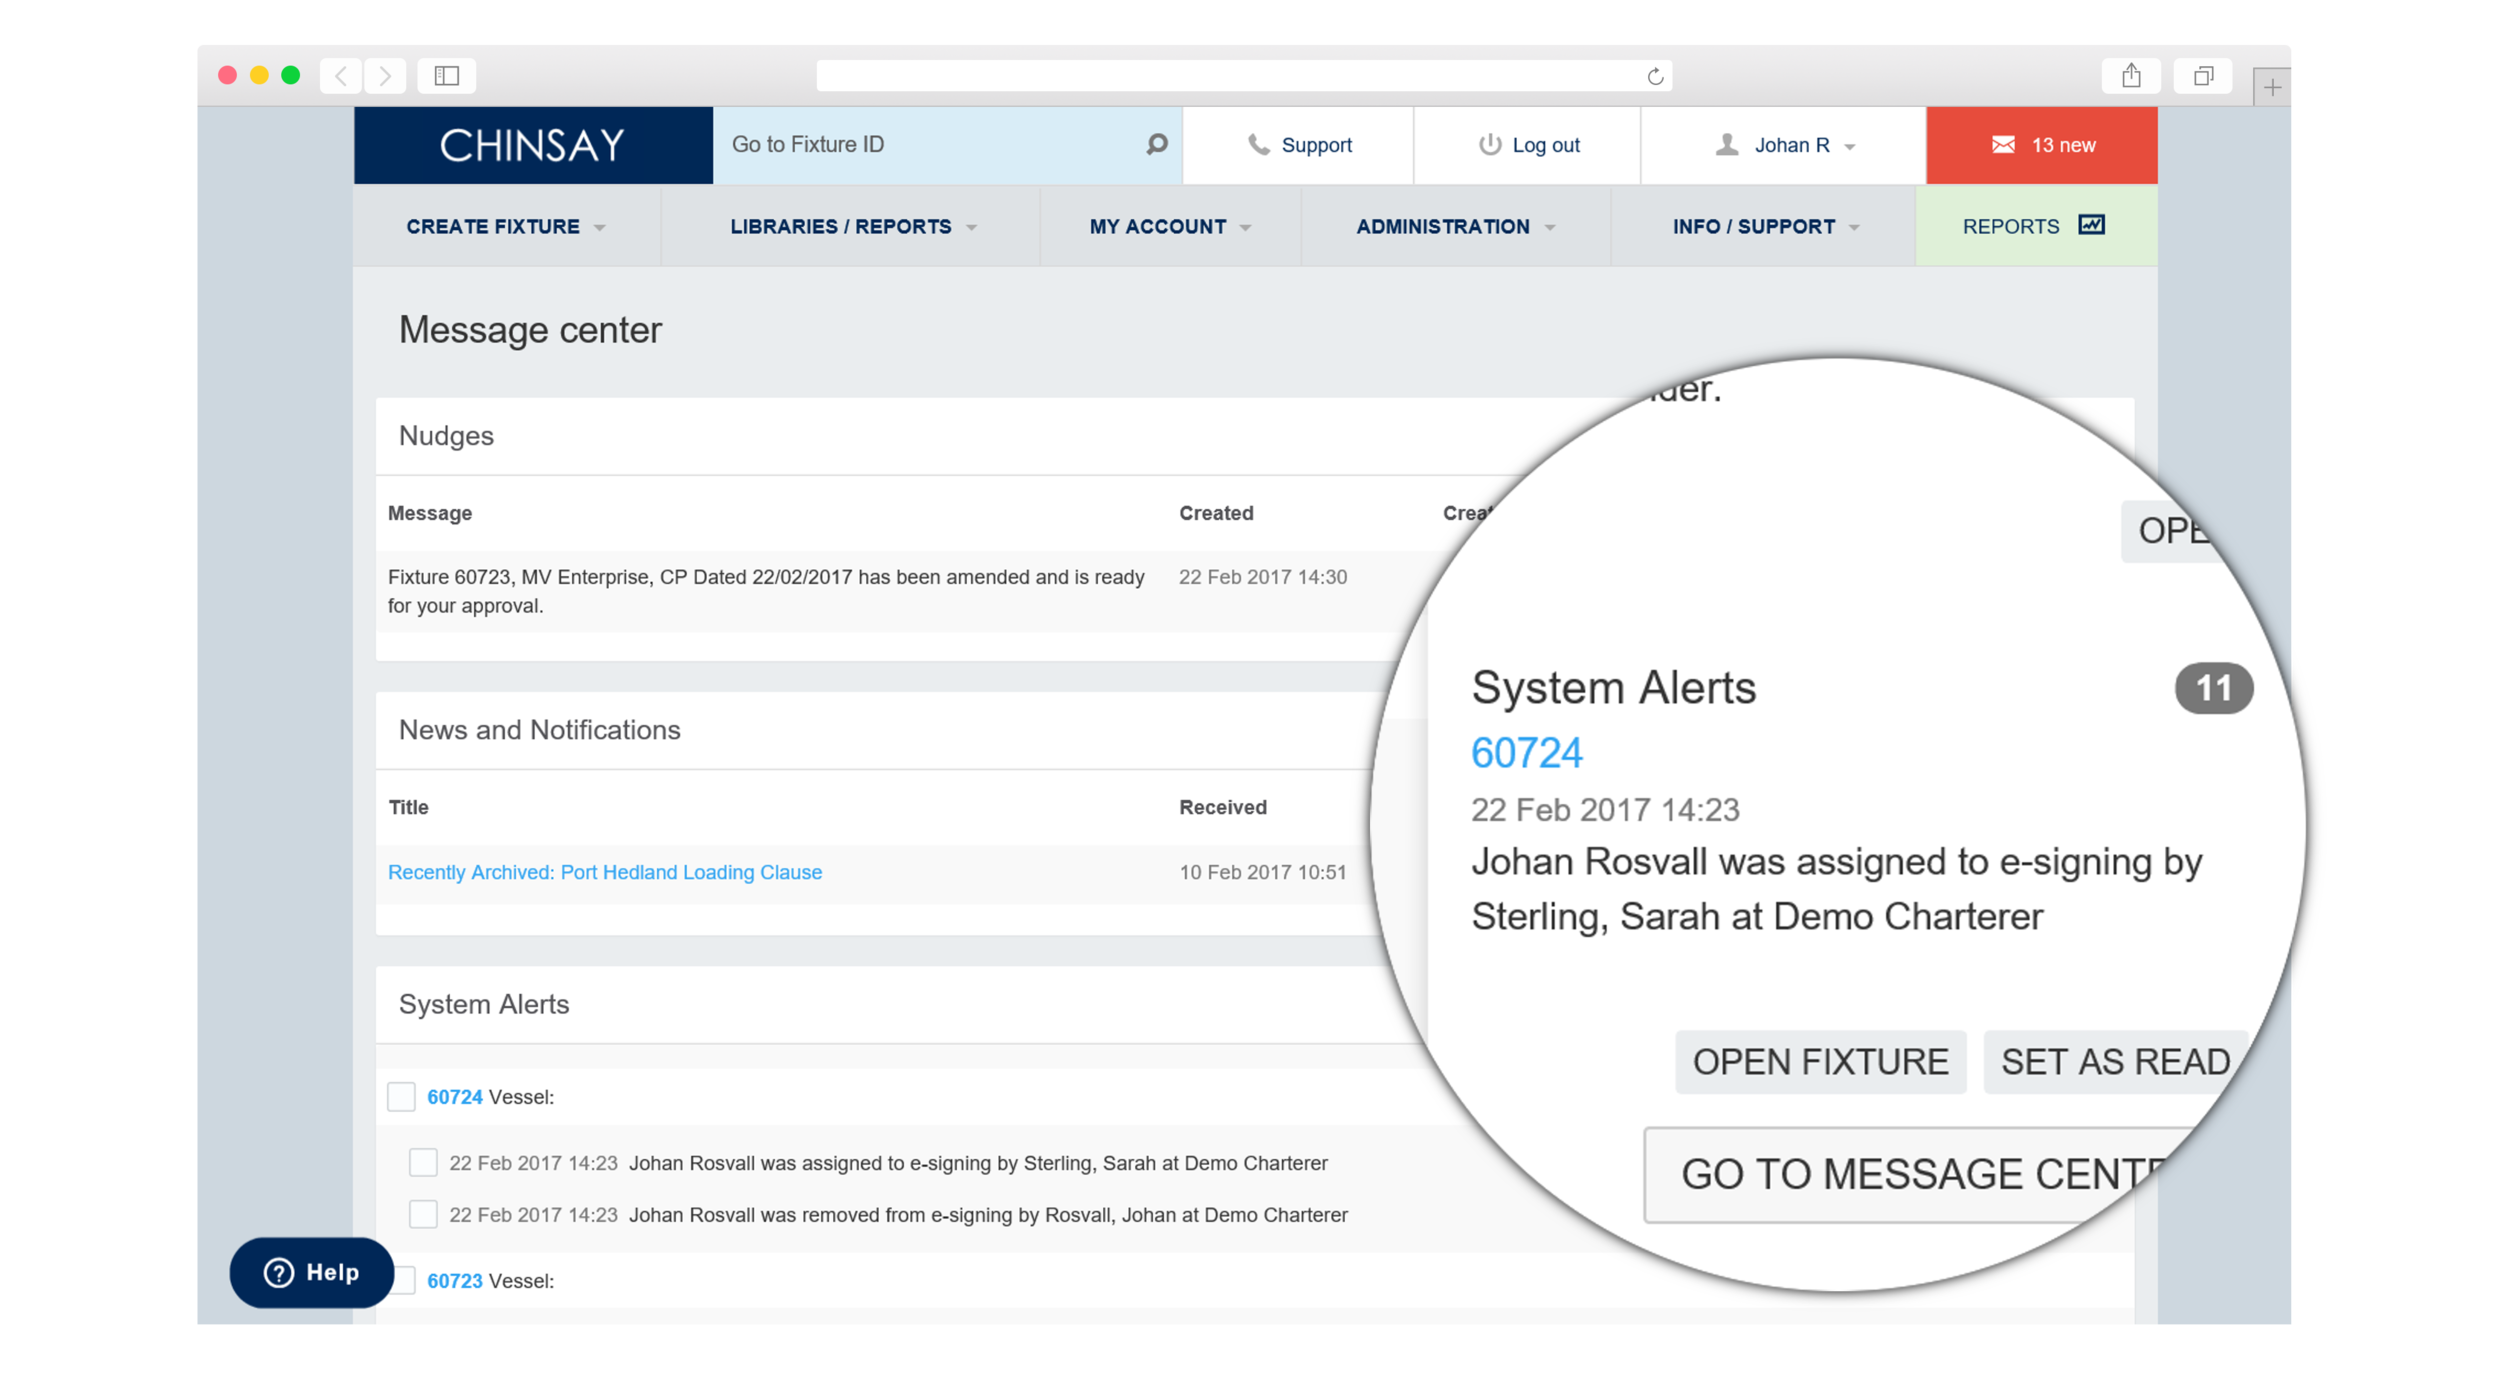 The Chinsay notification system makes internal and external collaboration easier with real-time updates, sent to all stakeholders via e-mail and the internal message centre